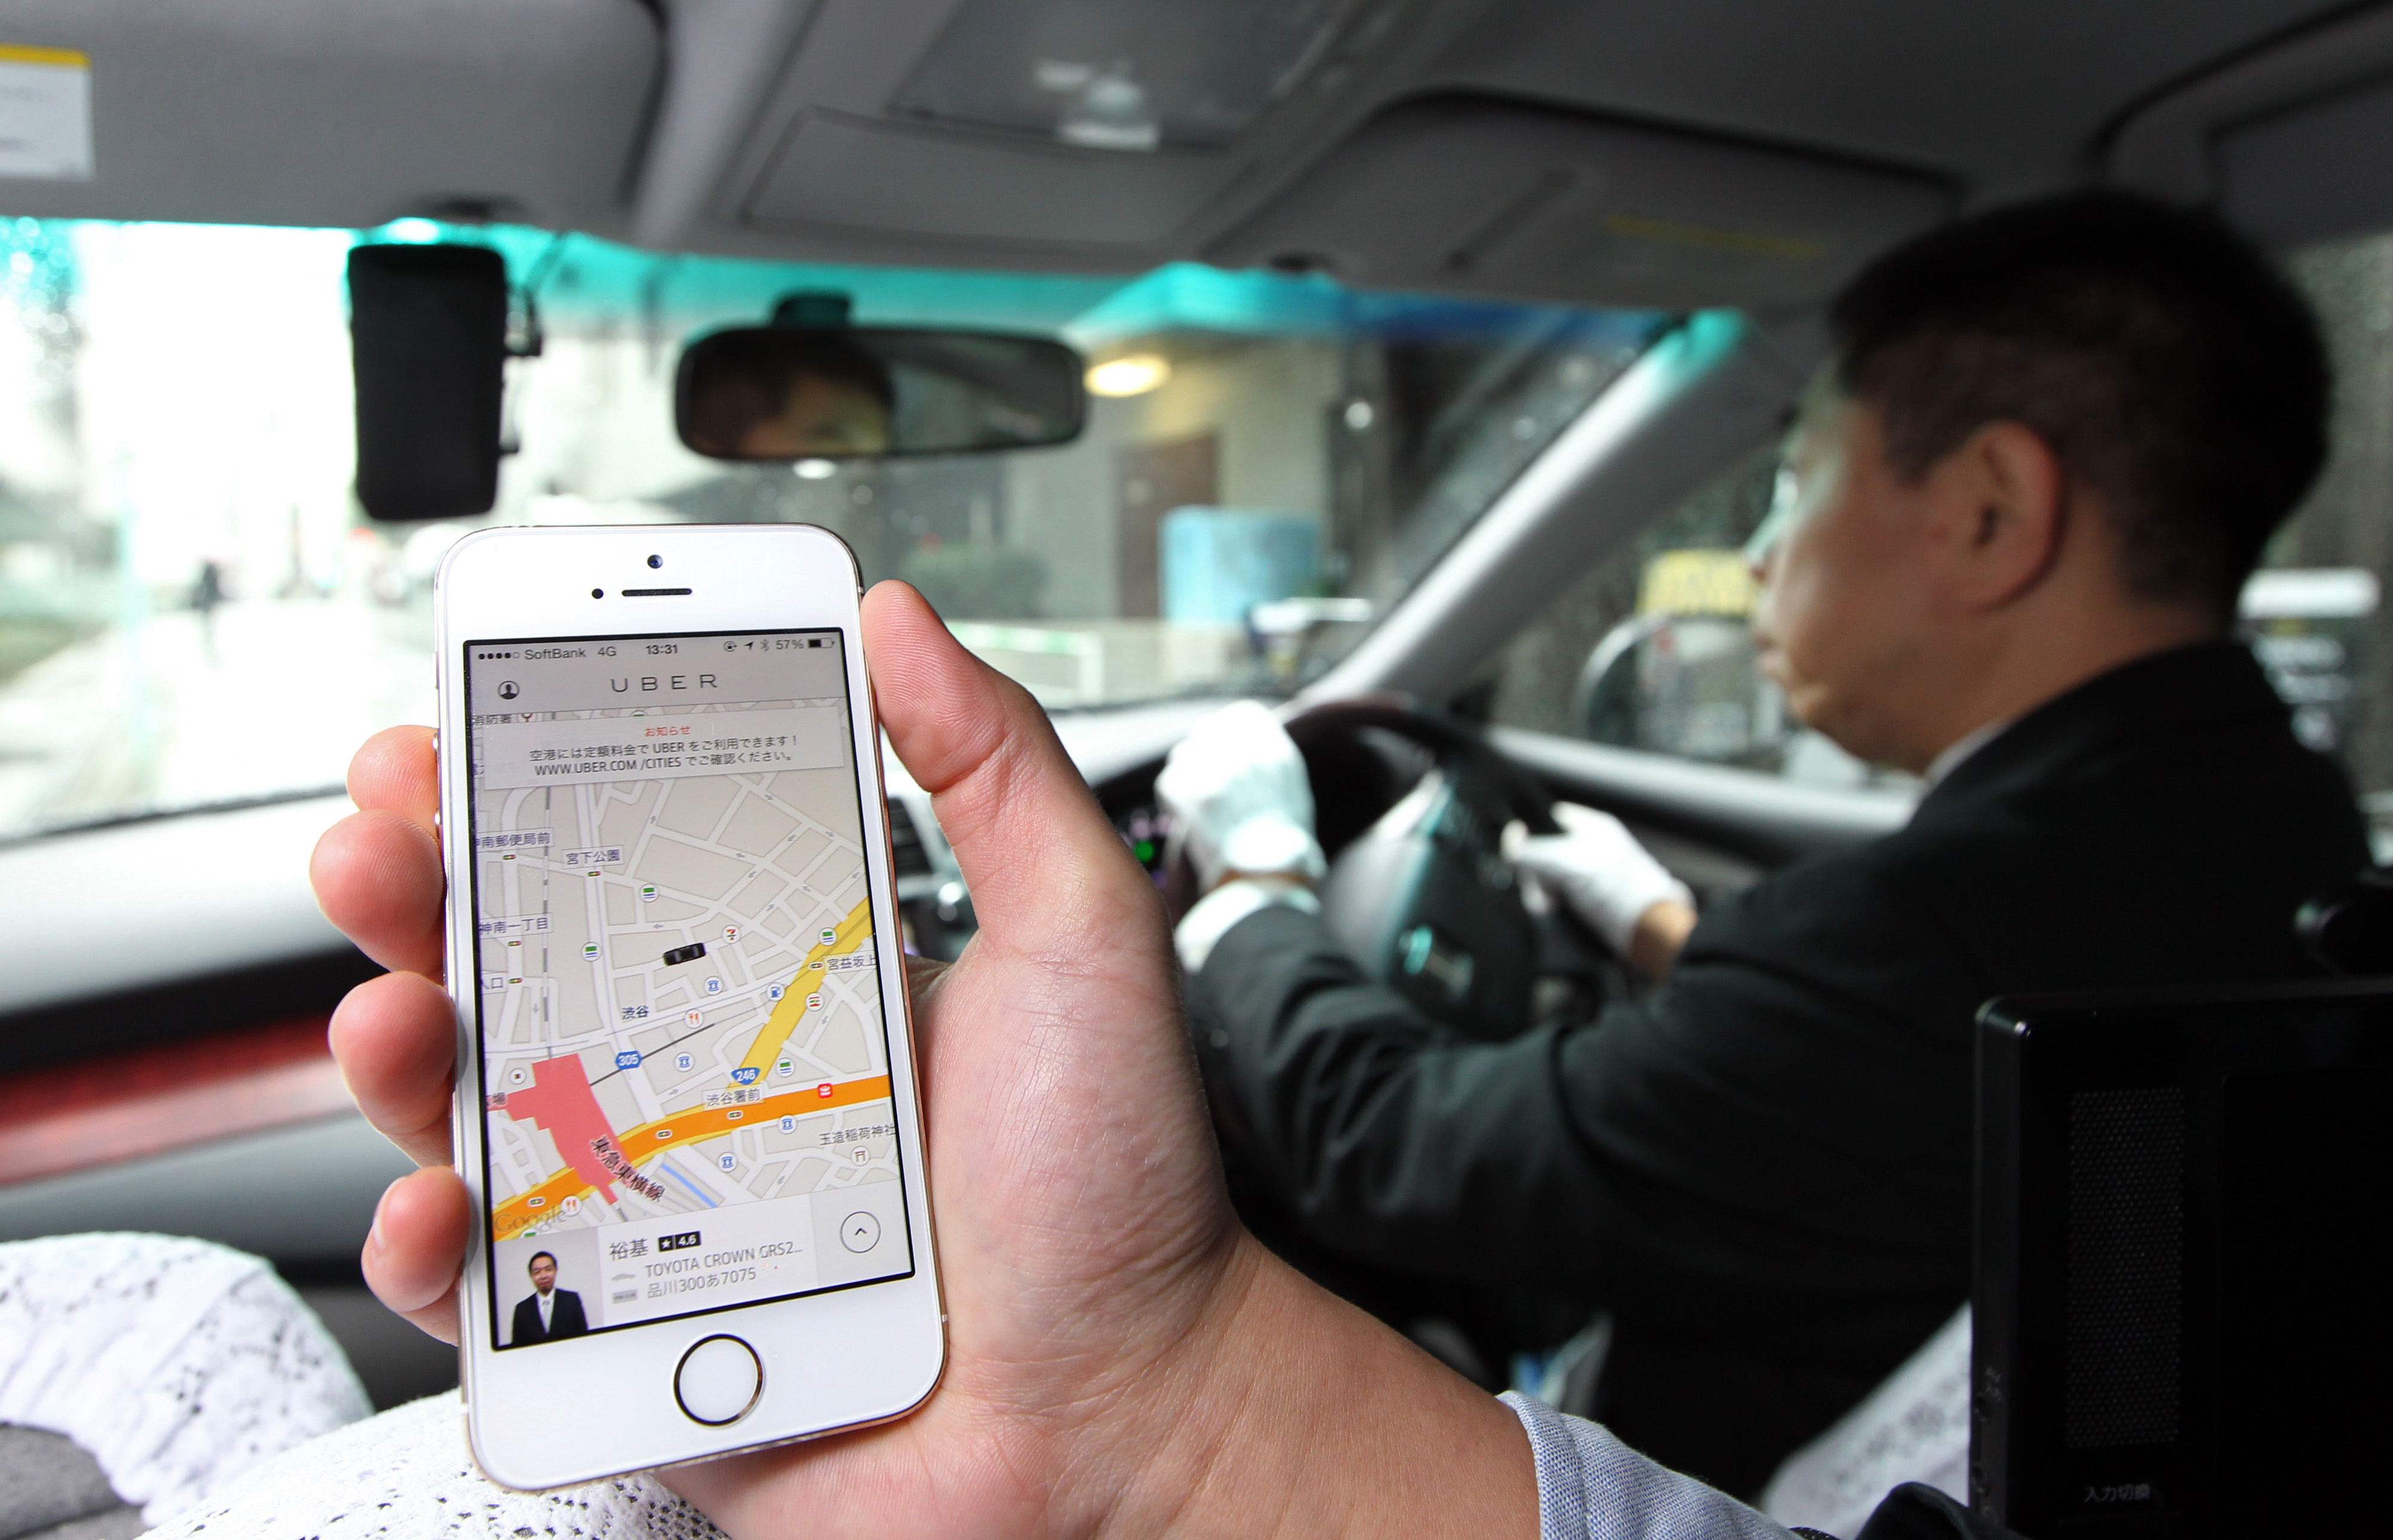 Uber discloses data breach that may have affected 50,000 drivers